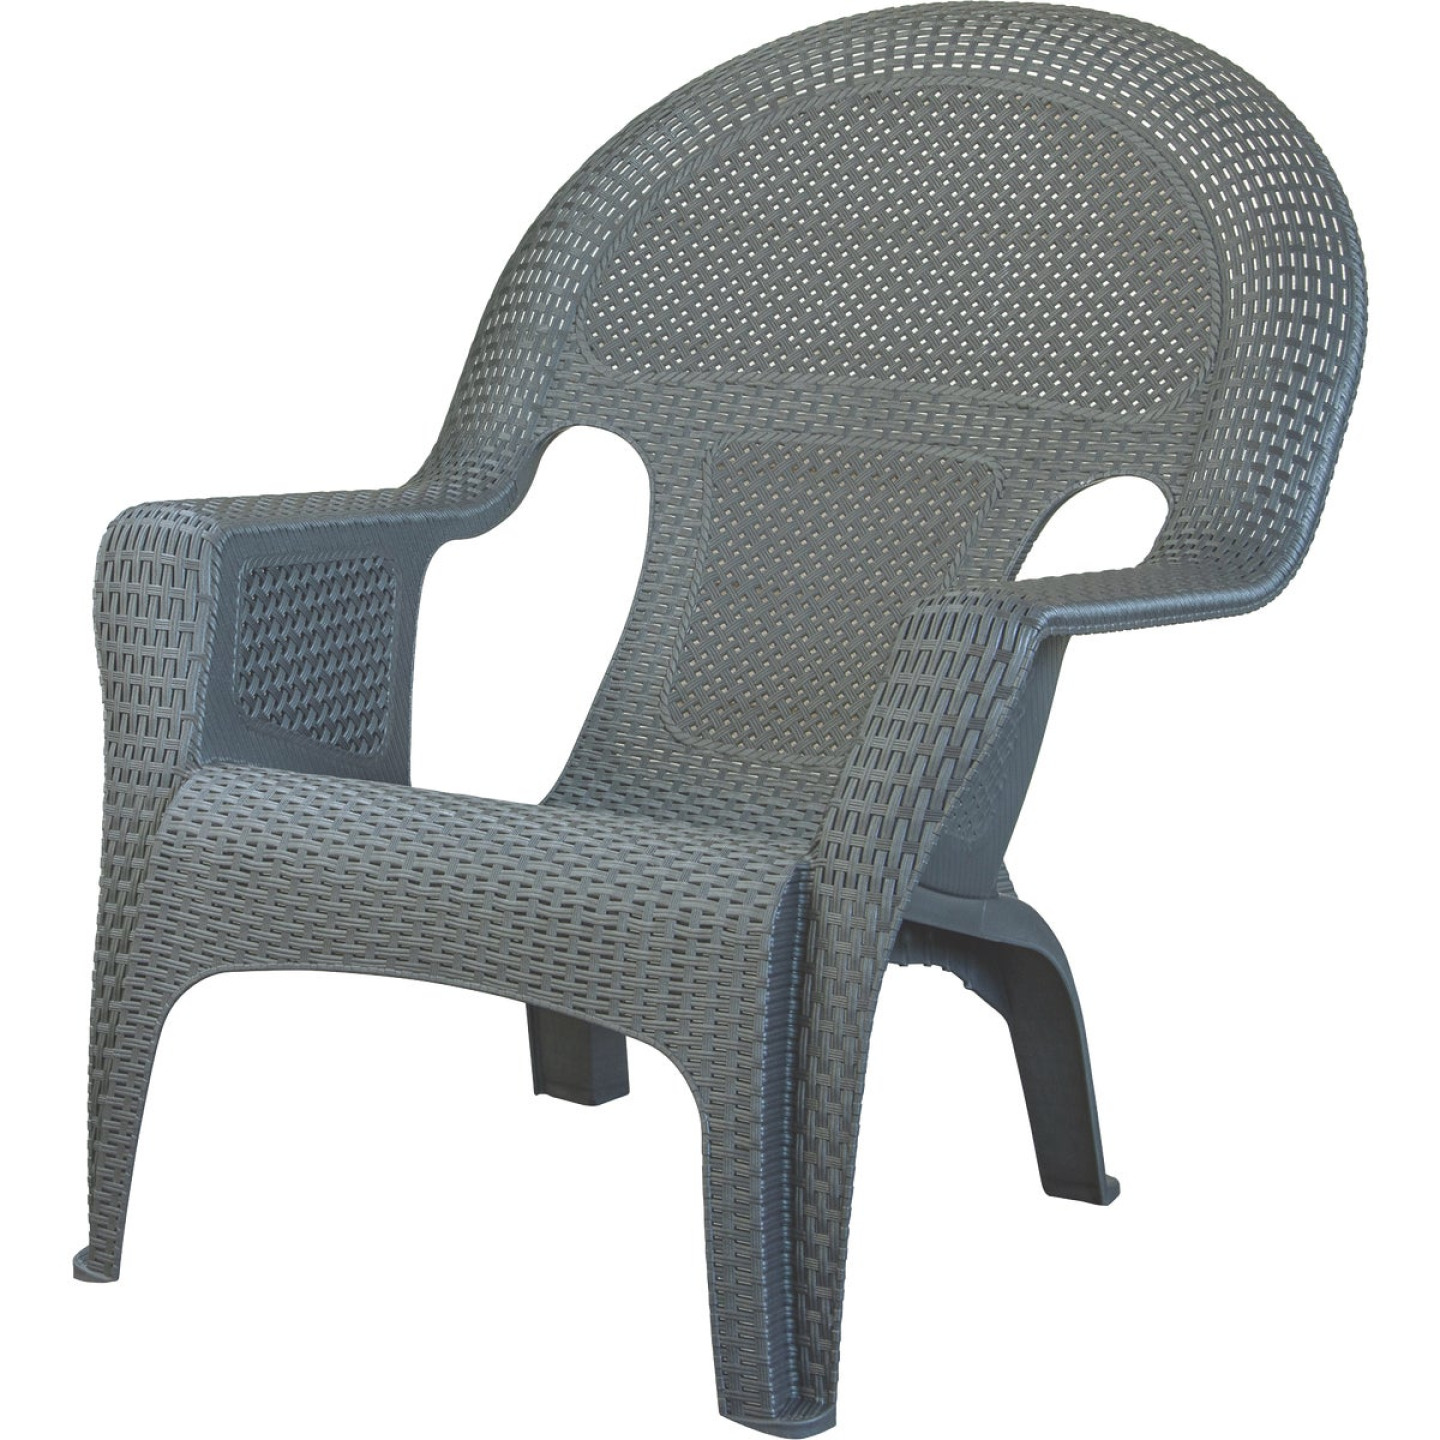 Adams Gray Woven Poly Lounge Chair Image 1